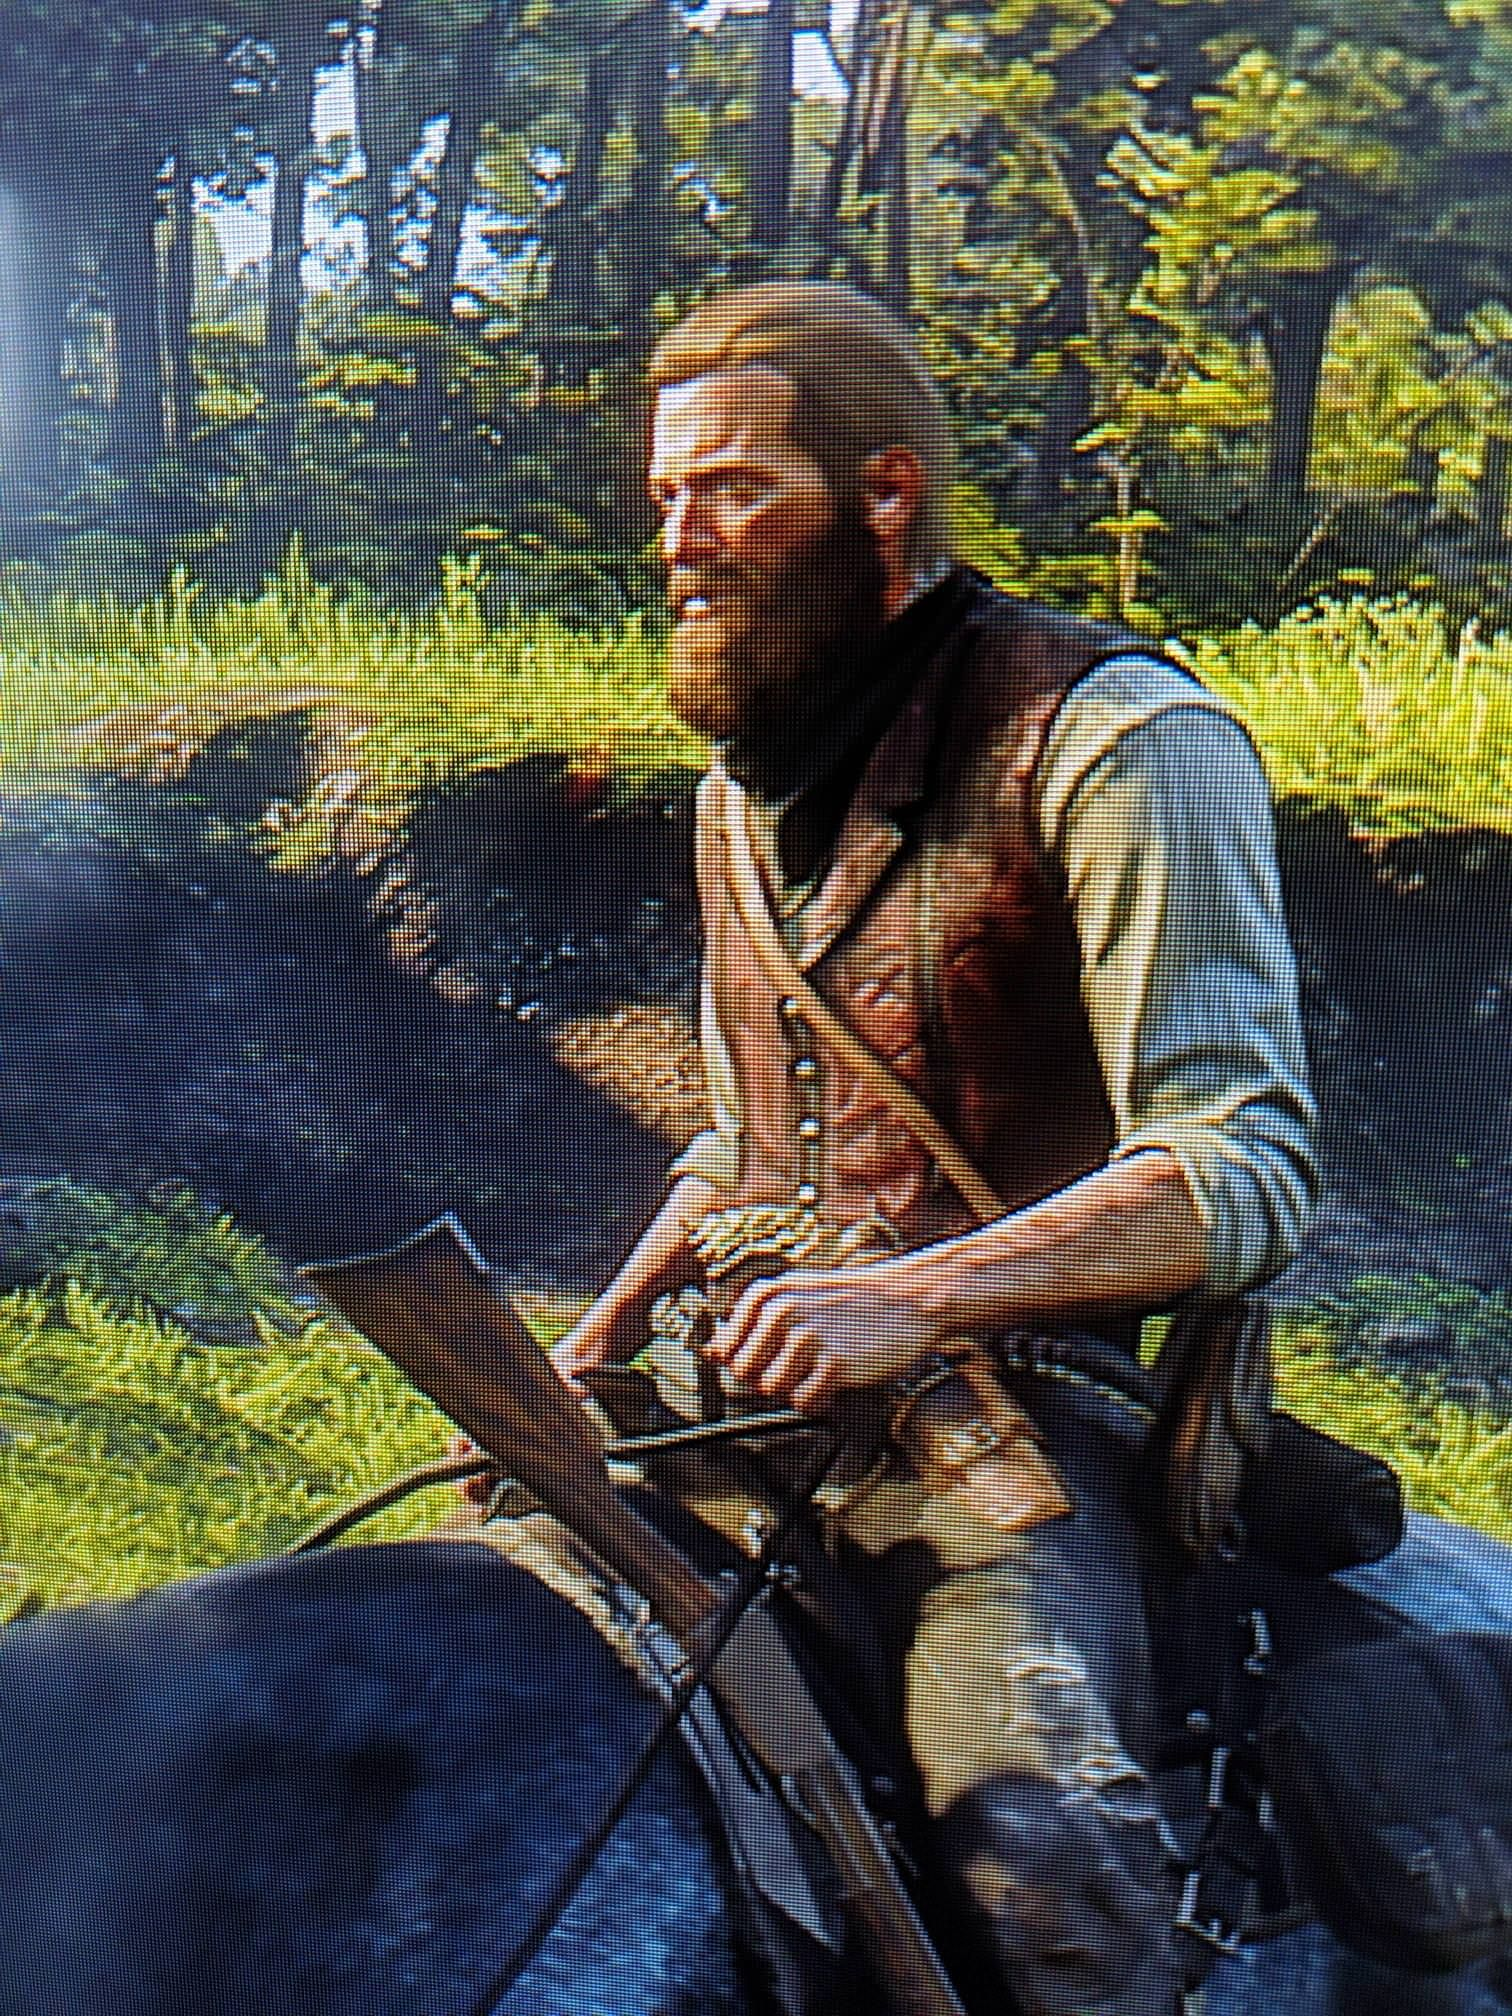 Shout Out To Arthur Morgan S Ability To Grow A Beautiful Beard In